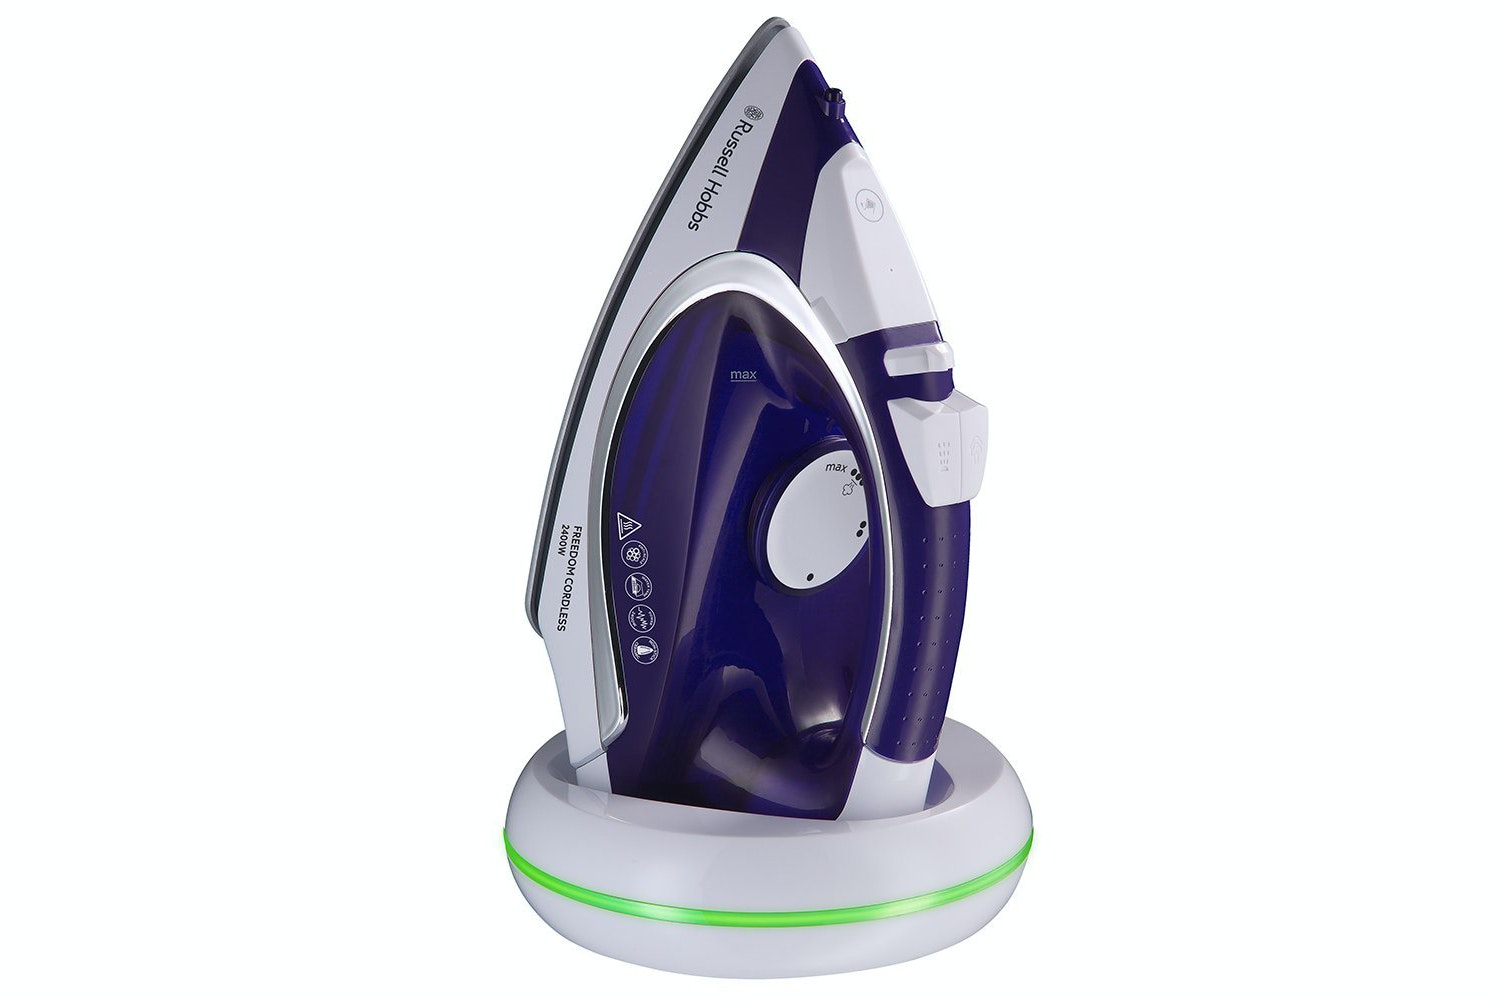 Russell Hobbs 2400W Freedom Cordless Iron | 23300